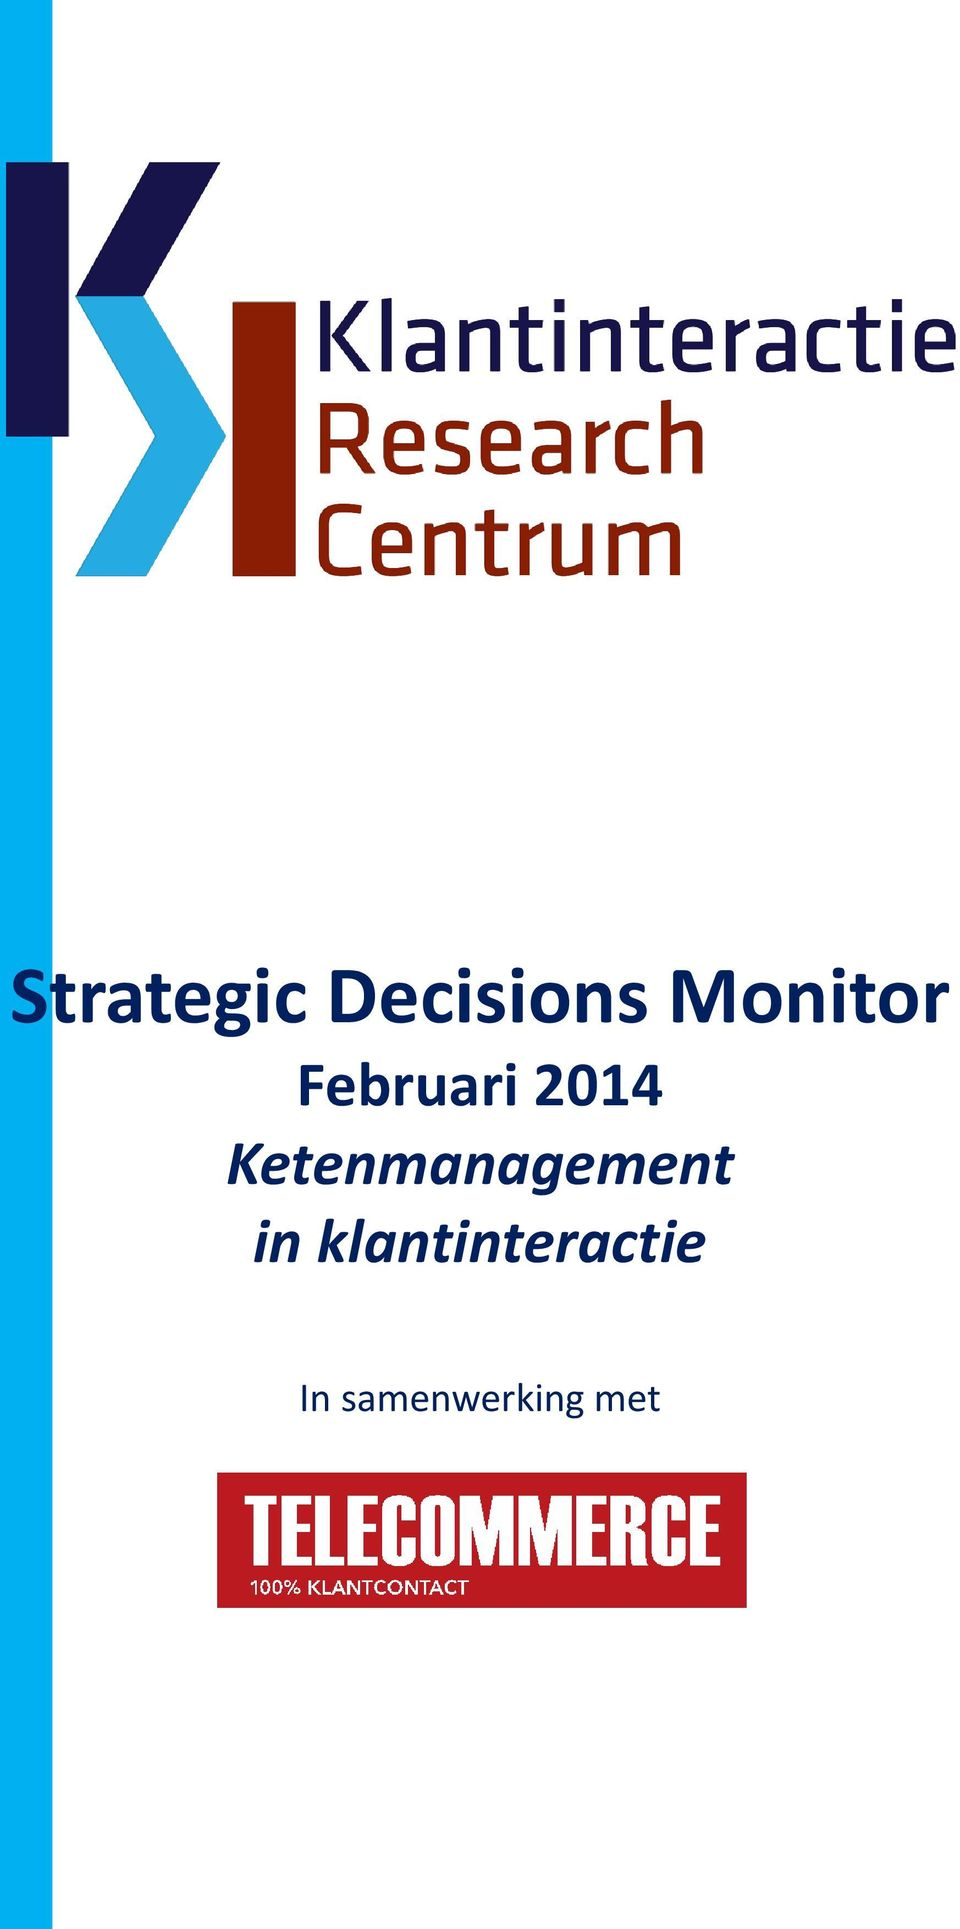 Ketenmanagement in